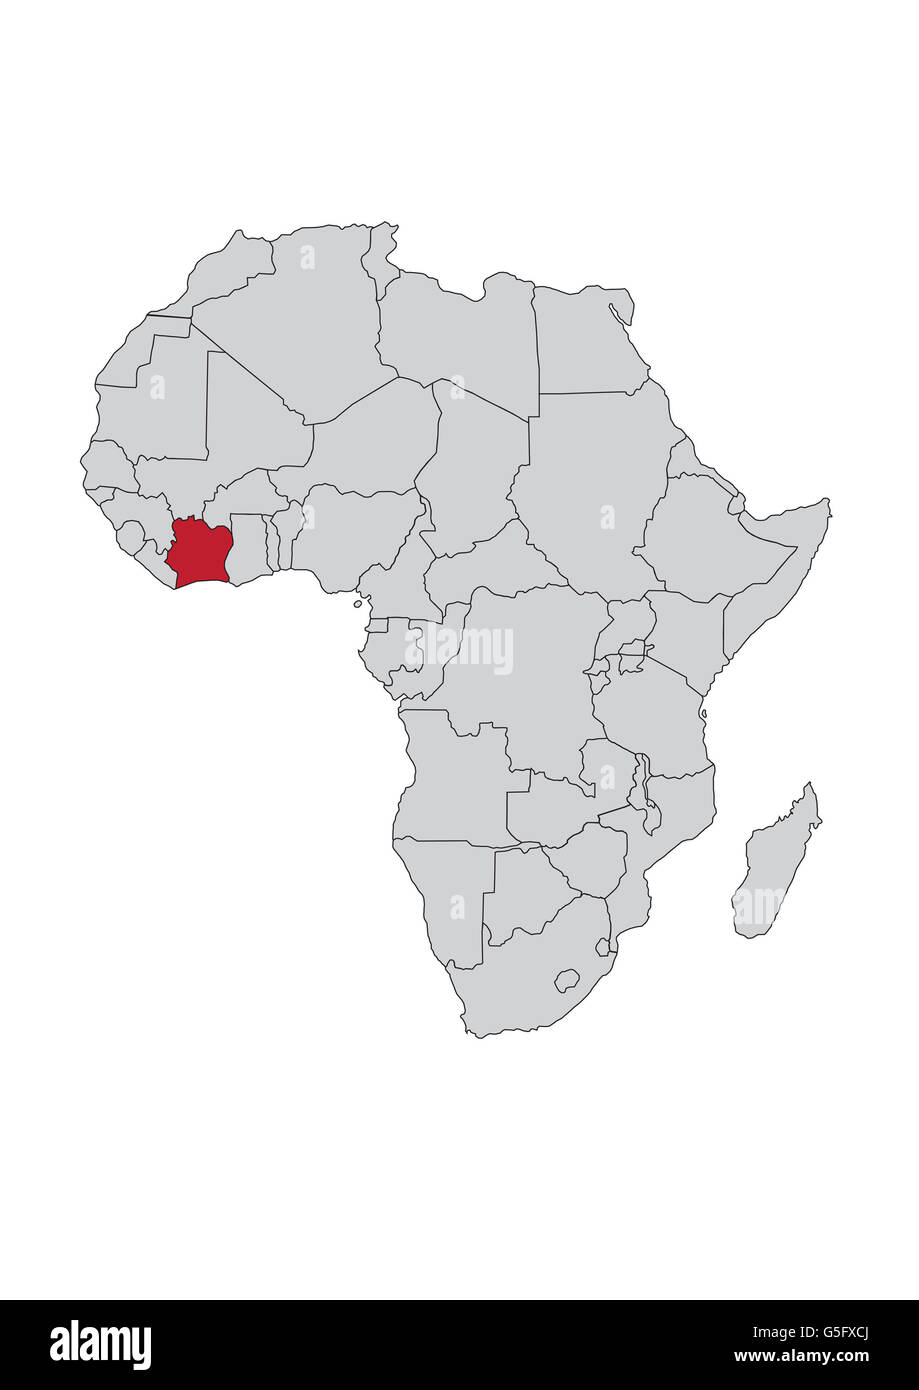 Map of Africa, Côte d'Ivoire (Ivory Coast Stock Photo: 106685506 - Ivory Coast In Africa Map on